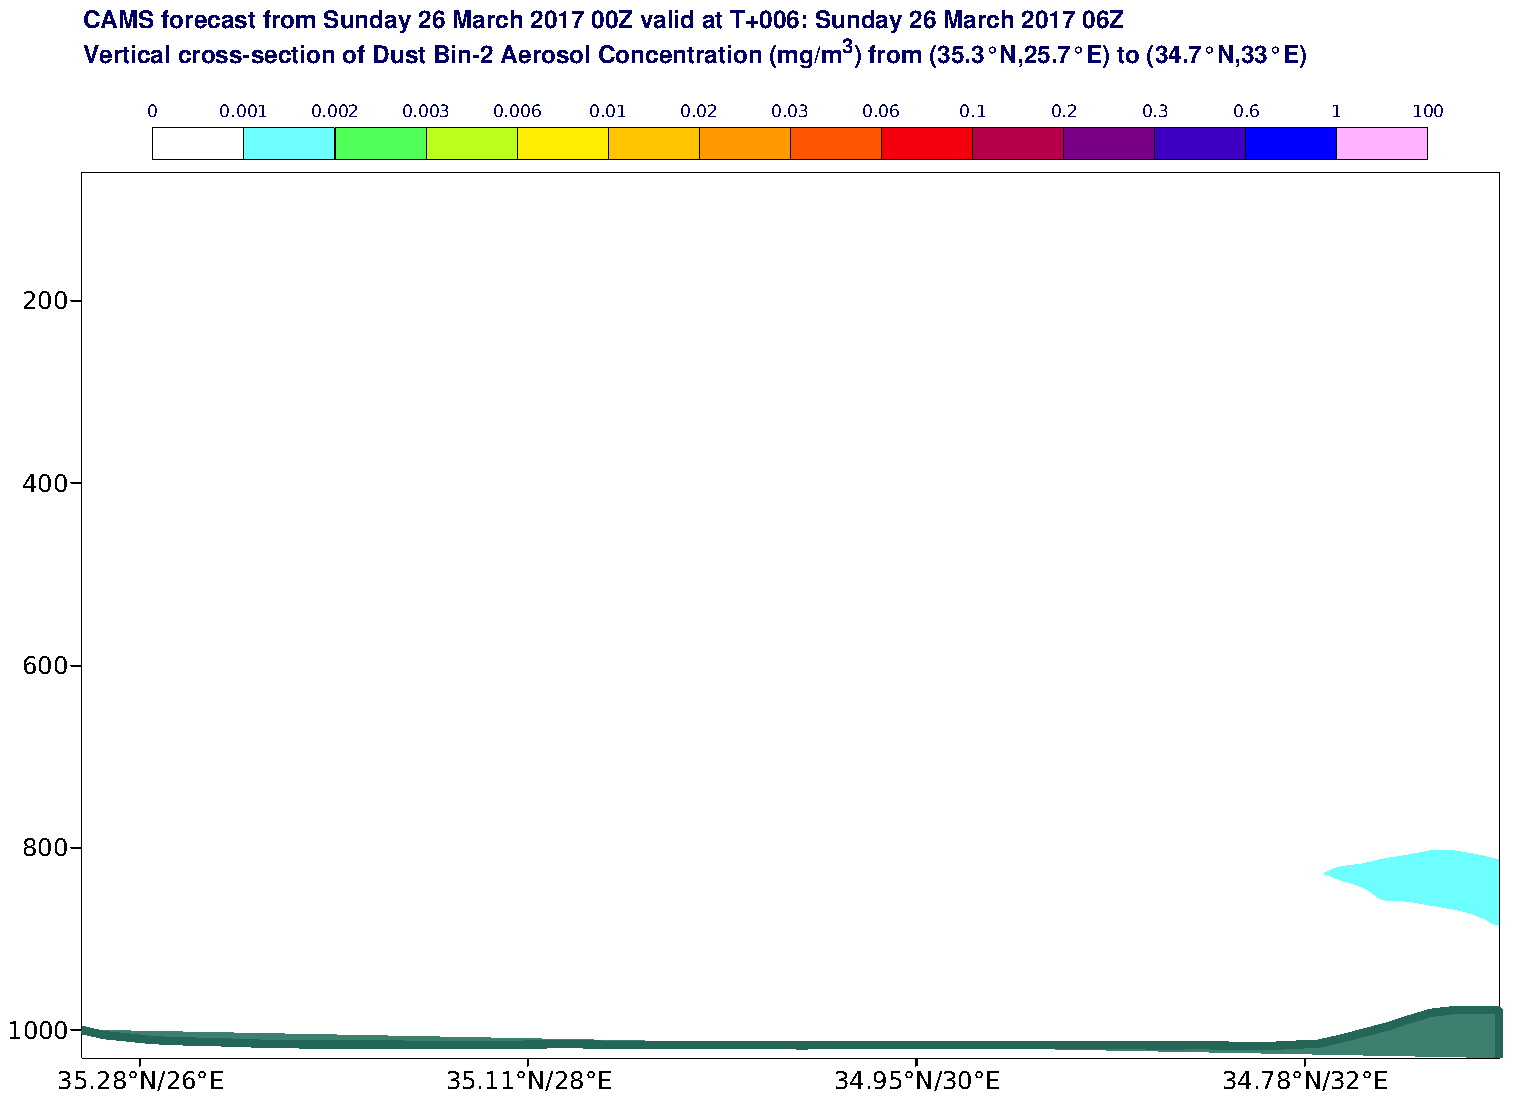 Vertical cross-section of Dust Bin-2 Aerosol Concentration (mg/m3) valid at T6 - 2017-03-26 06:00